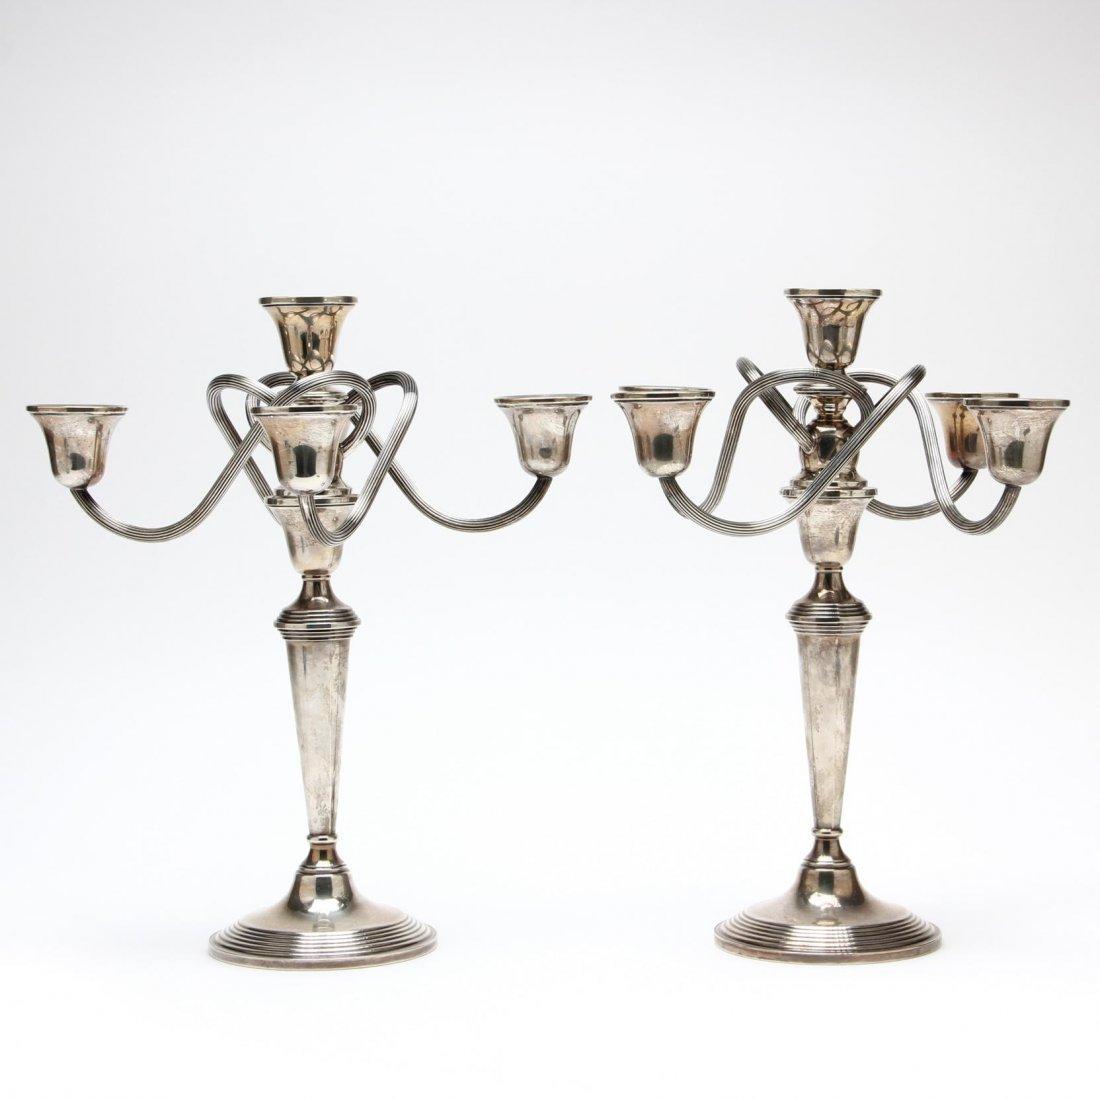 Pair of Sterling Silver Five-Light Candelabra by Crown